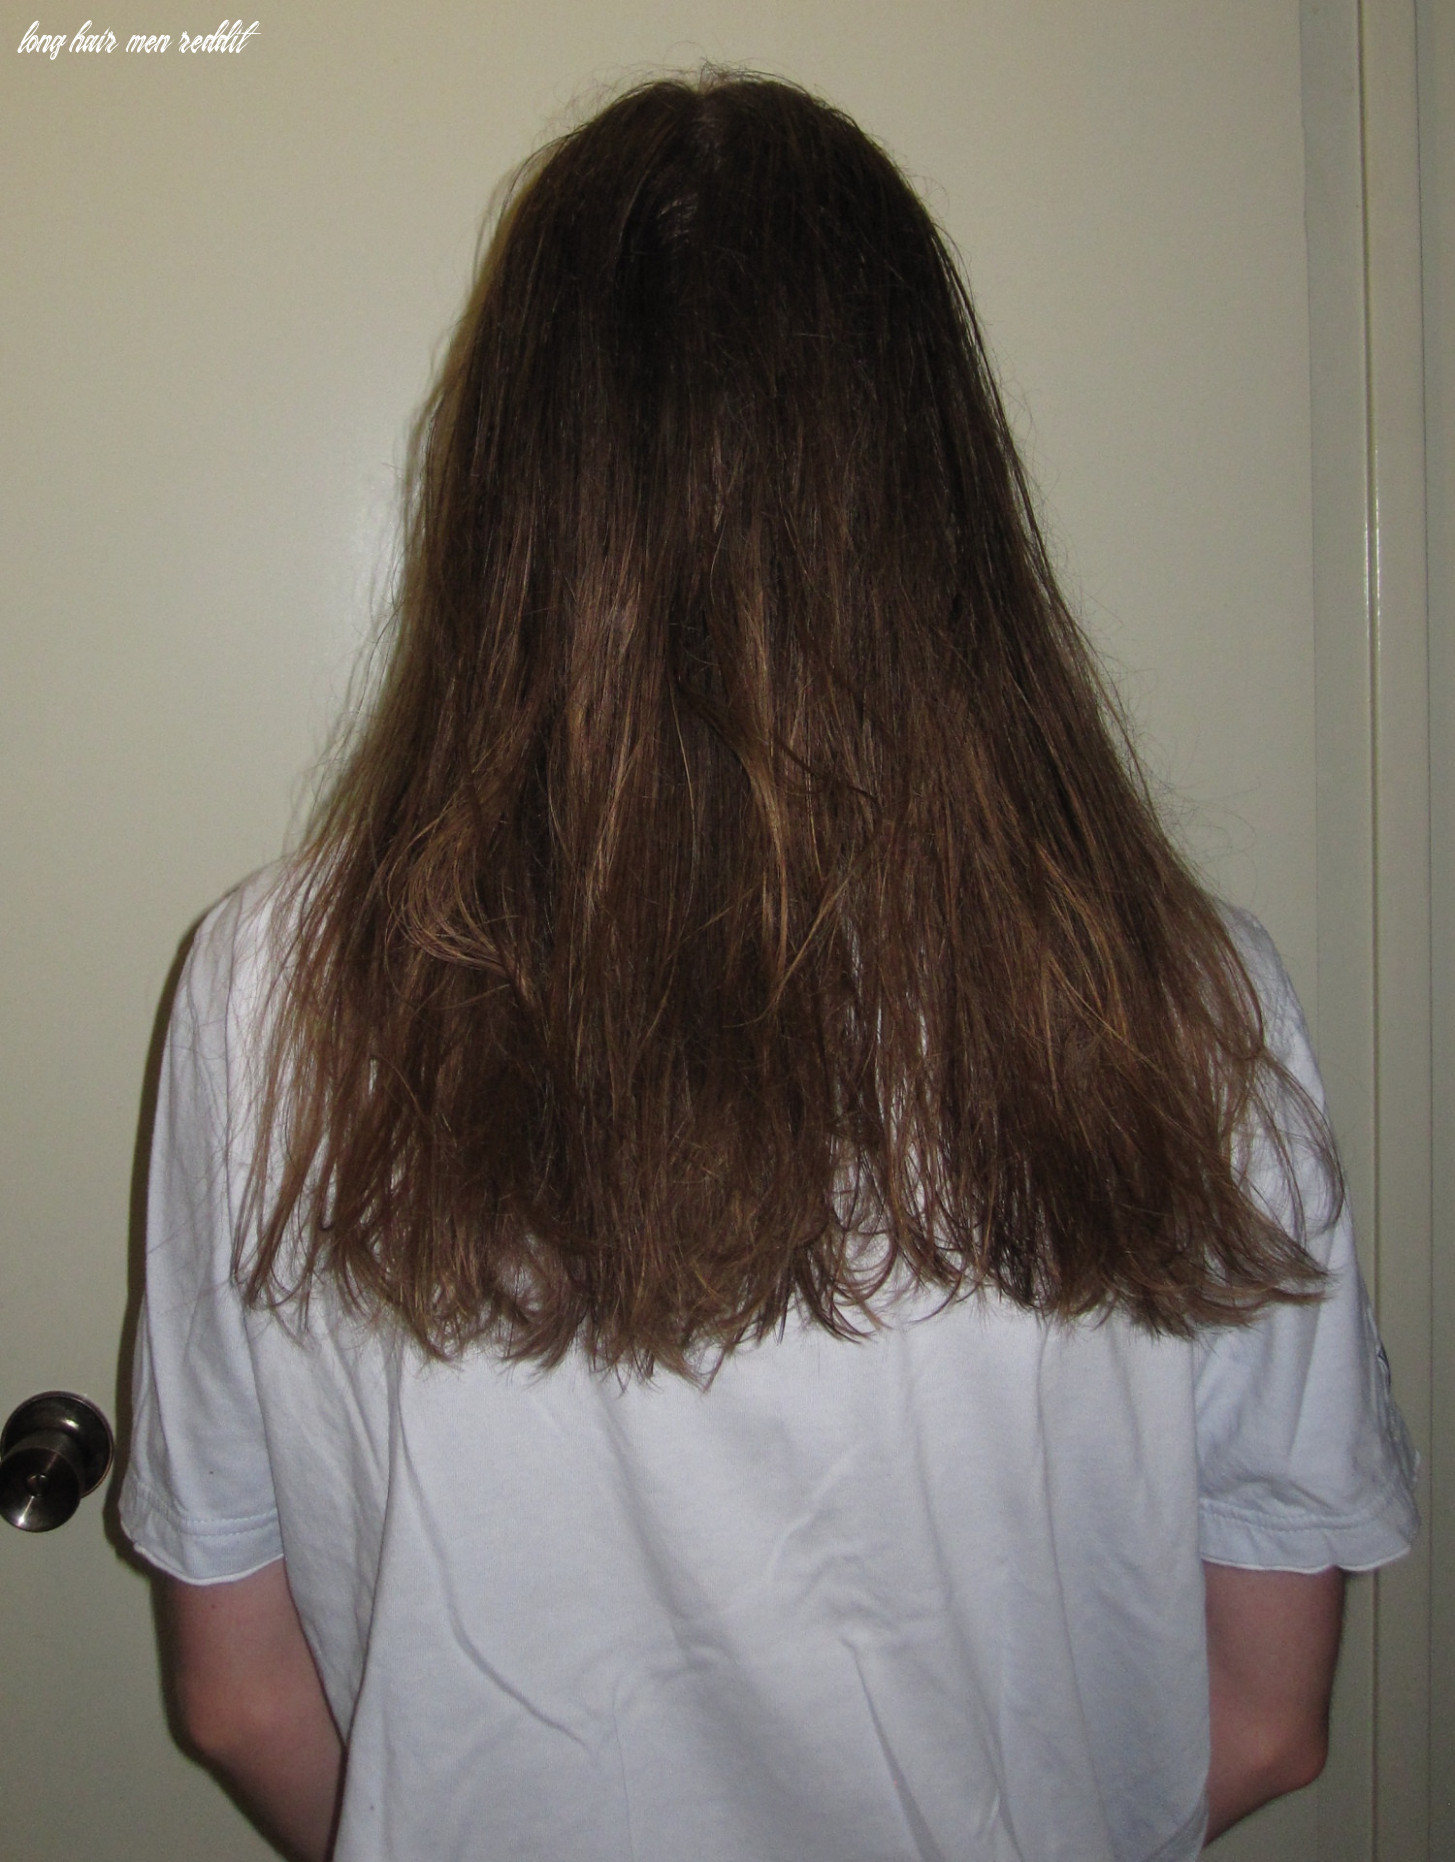 Long hair on guys, do you find it attractive?, unattractive